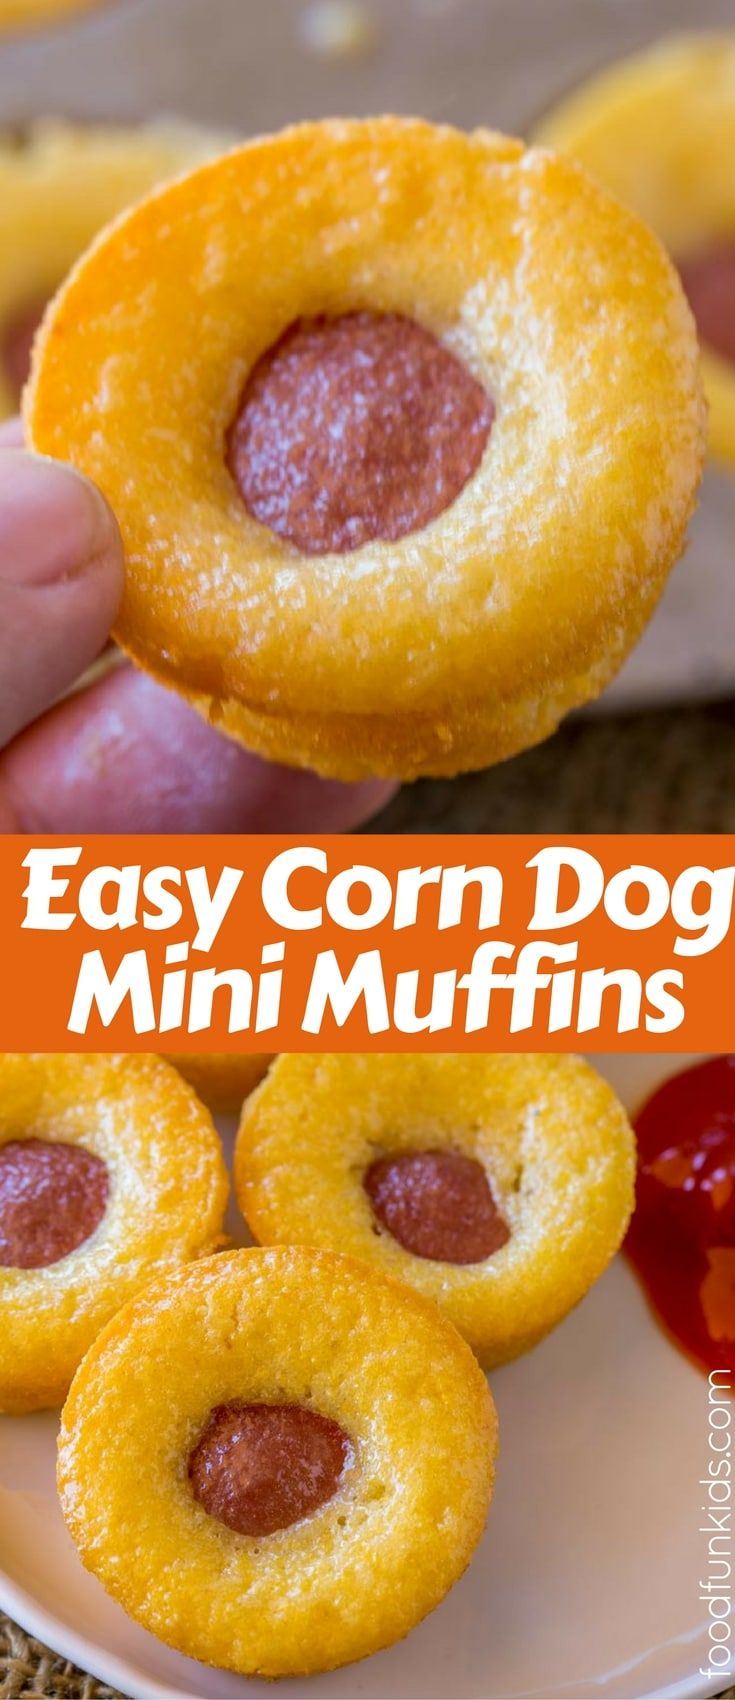 Corn Dog Mini Muffins with a cornbread base and hot dogs are a quick and easy snack or lunch for your little ones with just 4 ingredients! via @foodfunkids